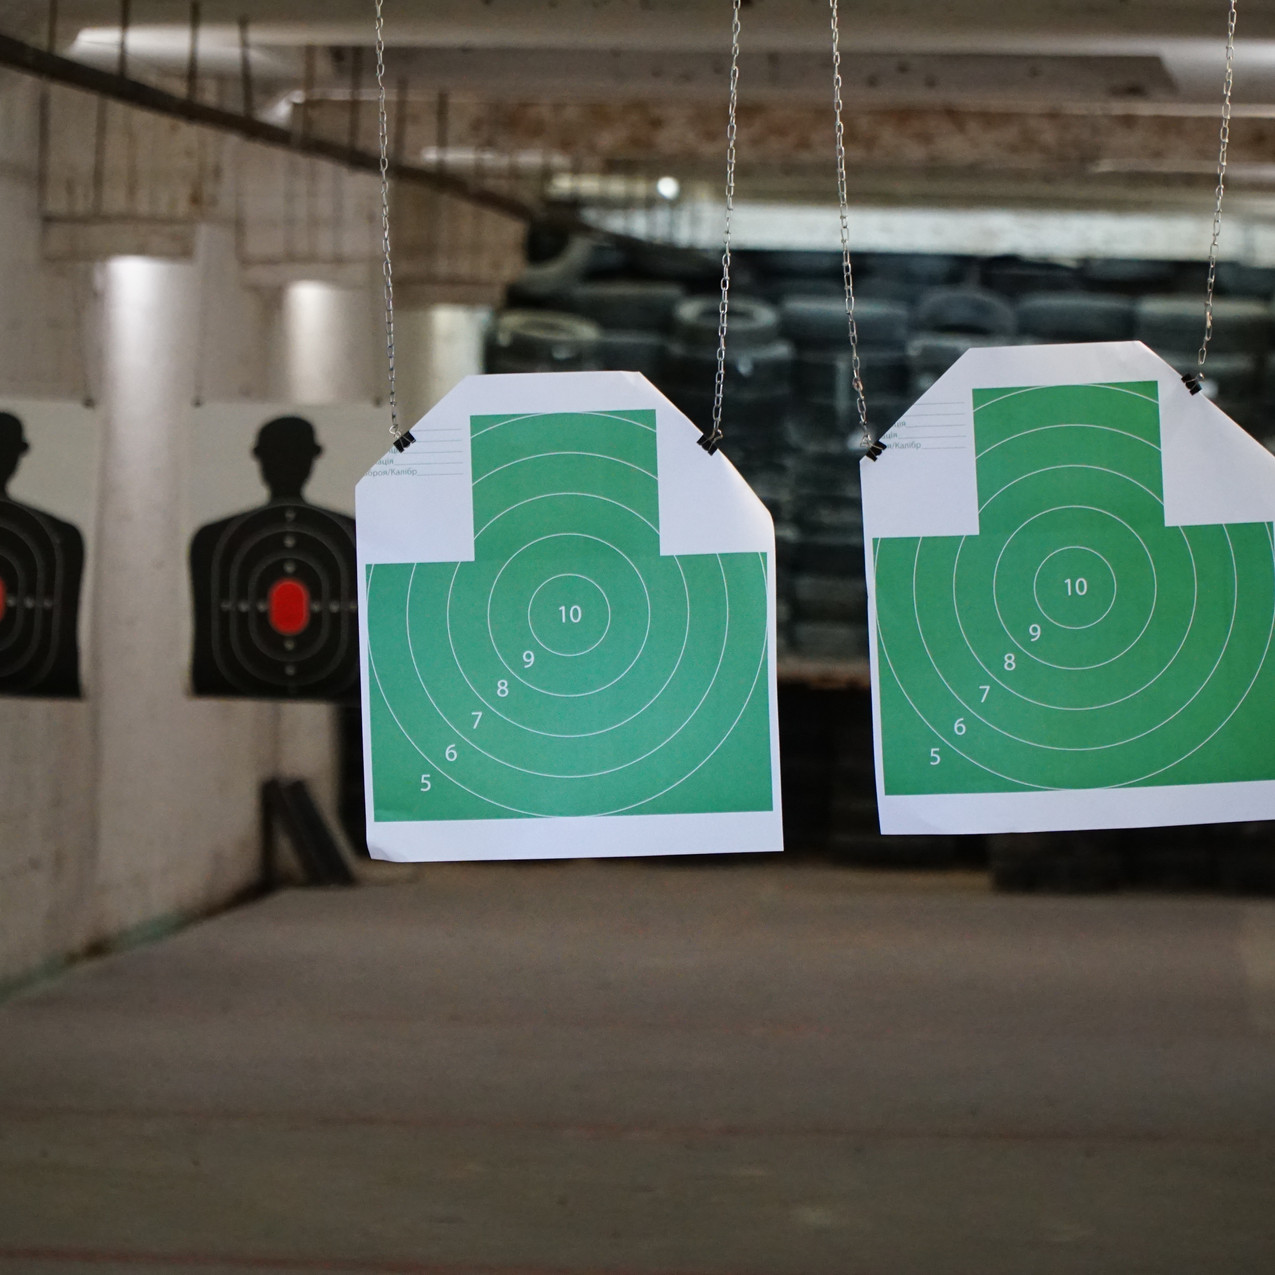 The Targets